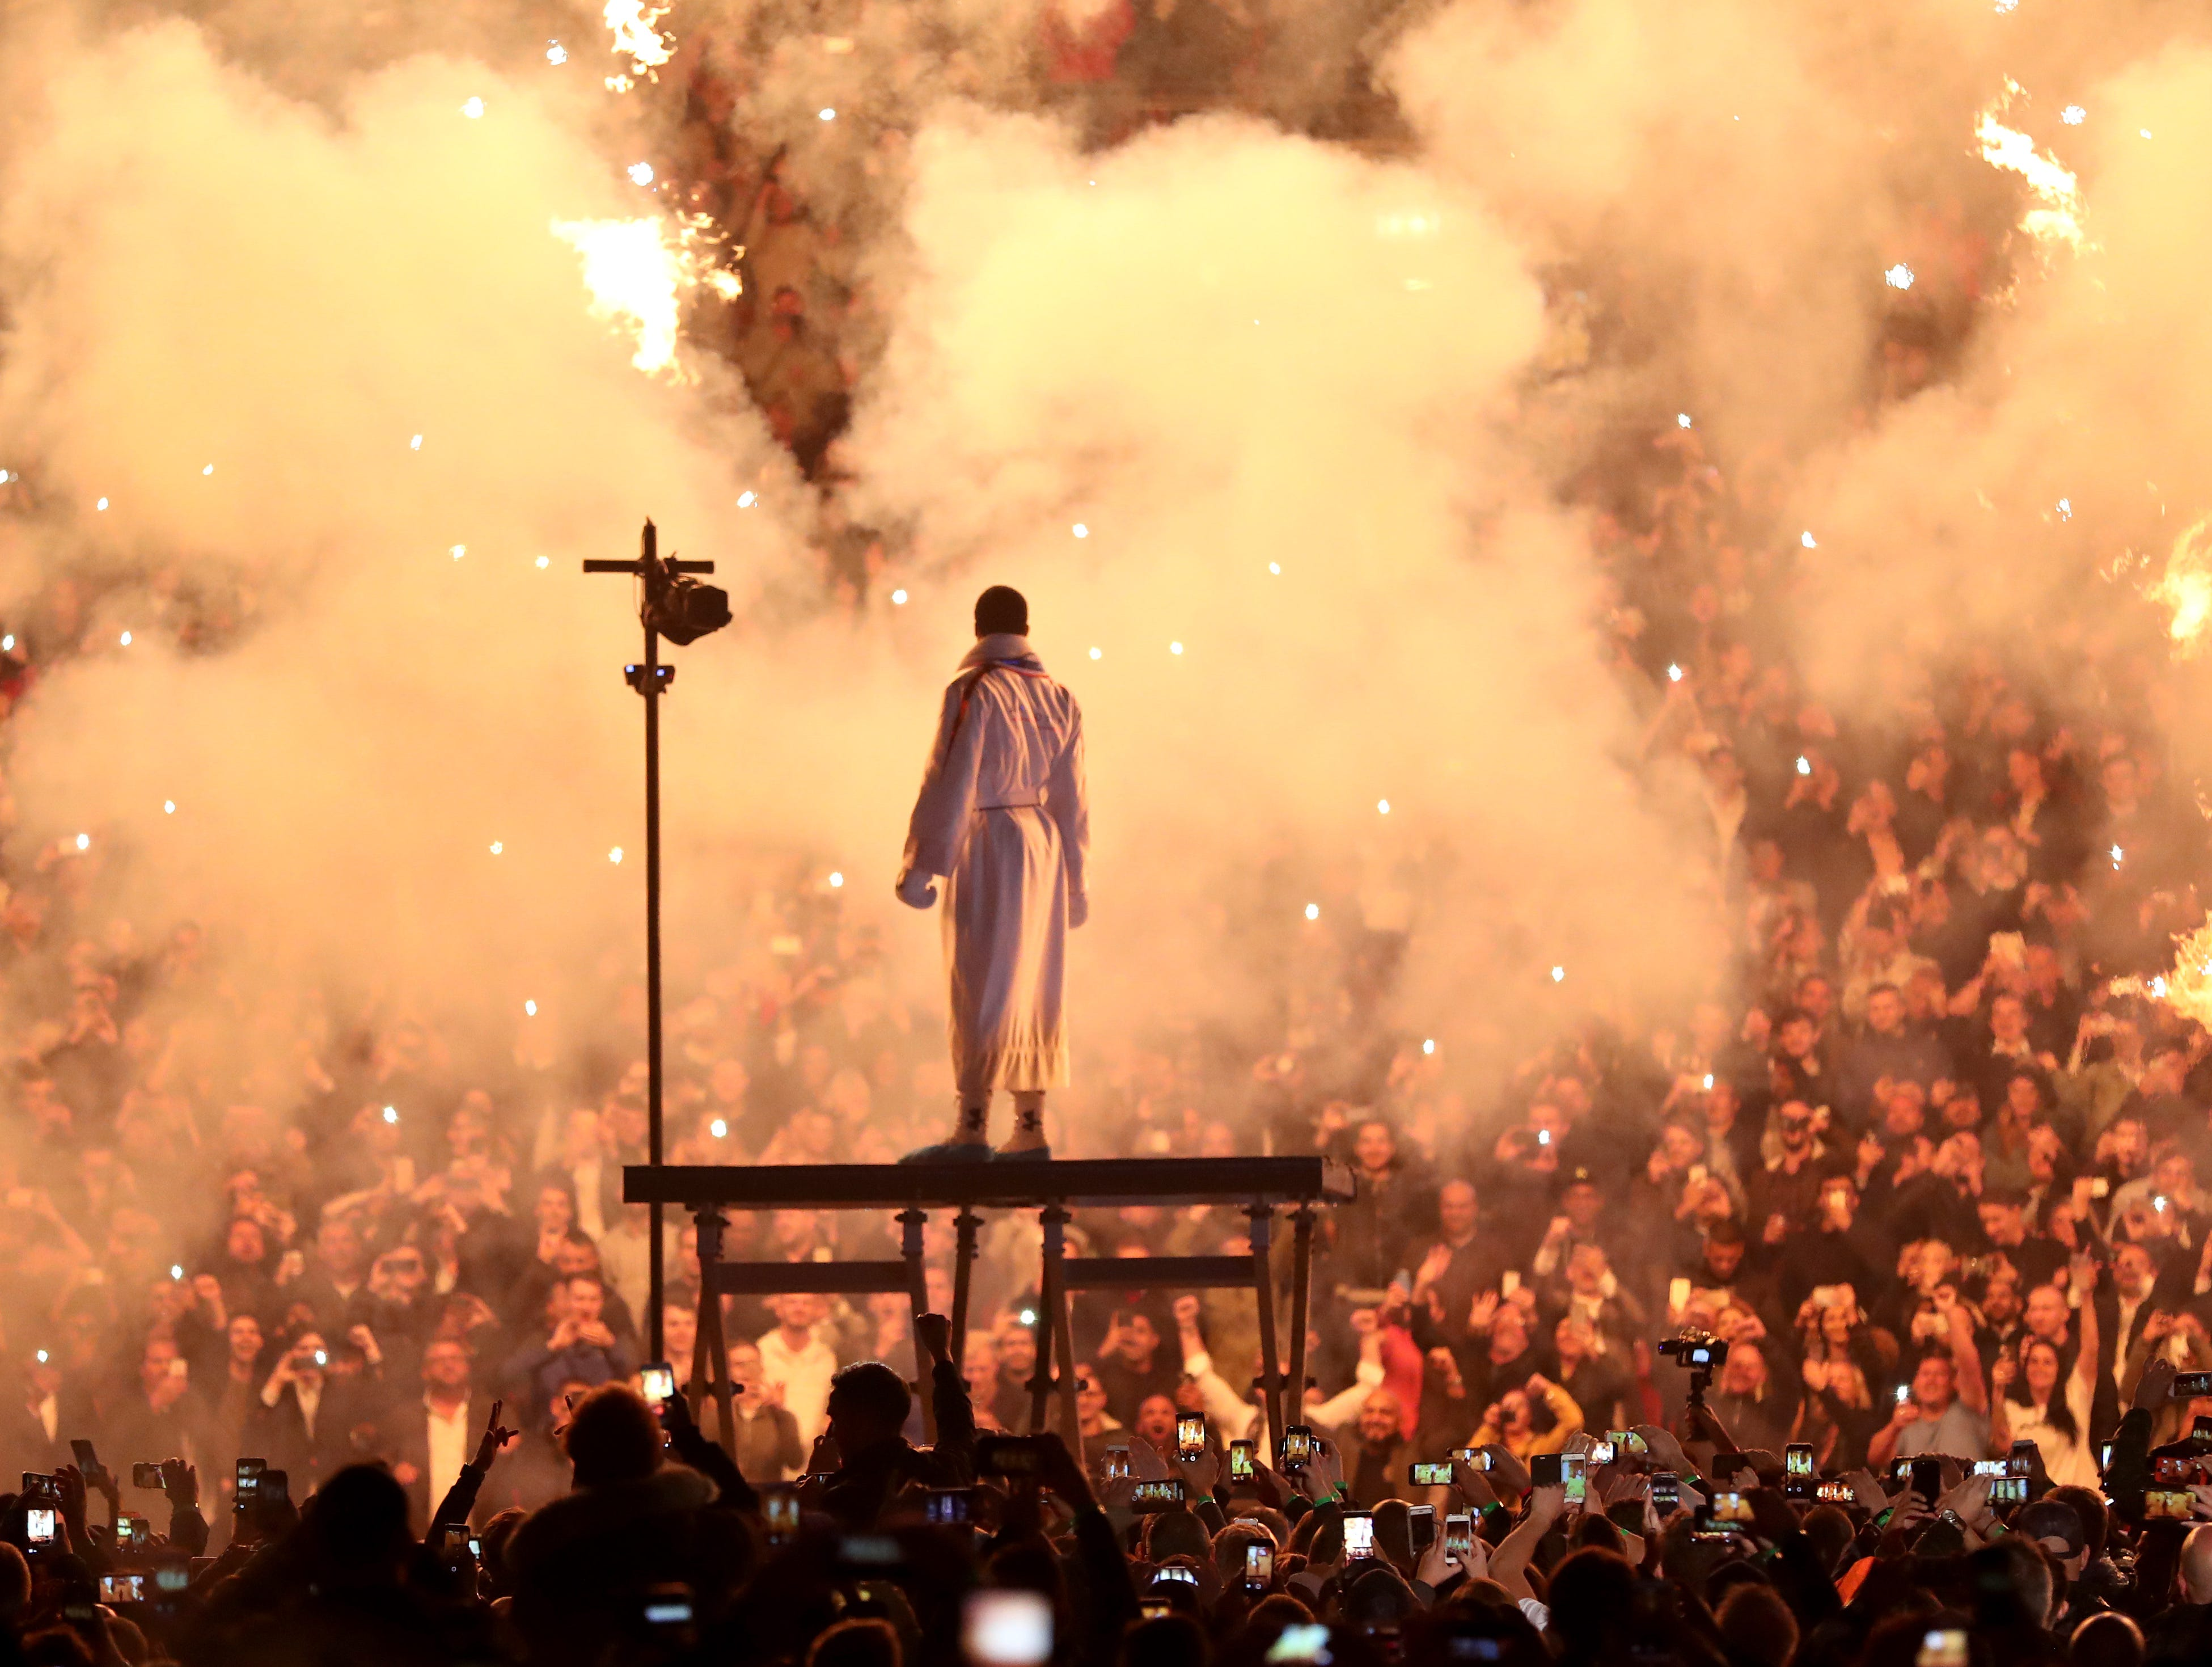 Anthony Joshua makes his way to the ring prior to his IBF, WBA Super, WBO & IBO World Heavyweight Championship title fight against Alexander Povetkin at Wembley Stadium on Sept. 22, 2018 in London, England.